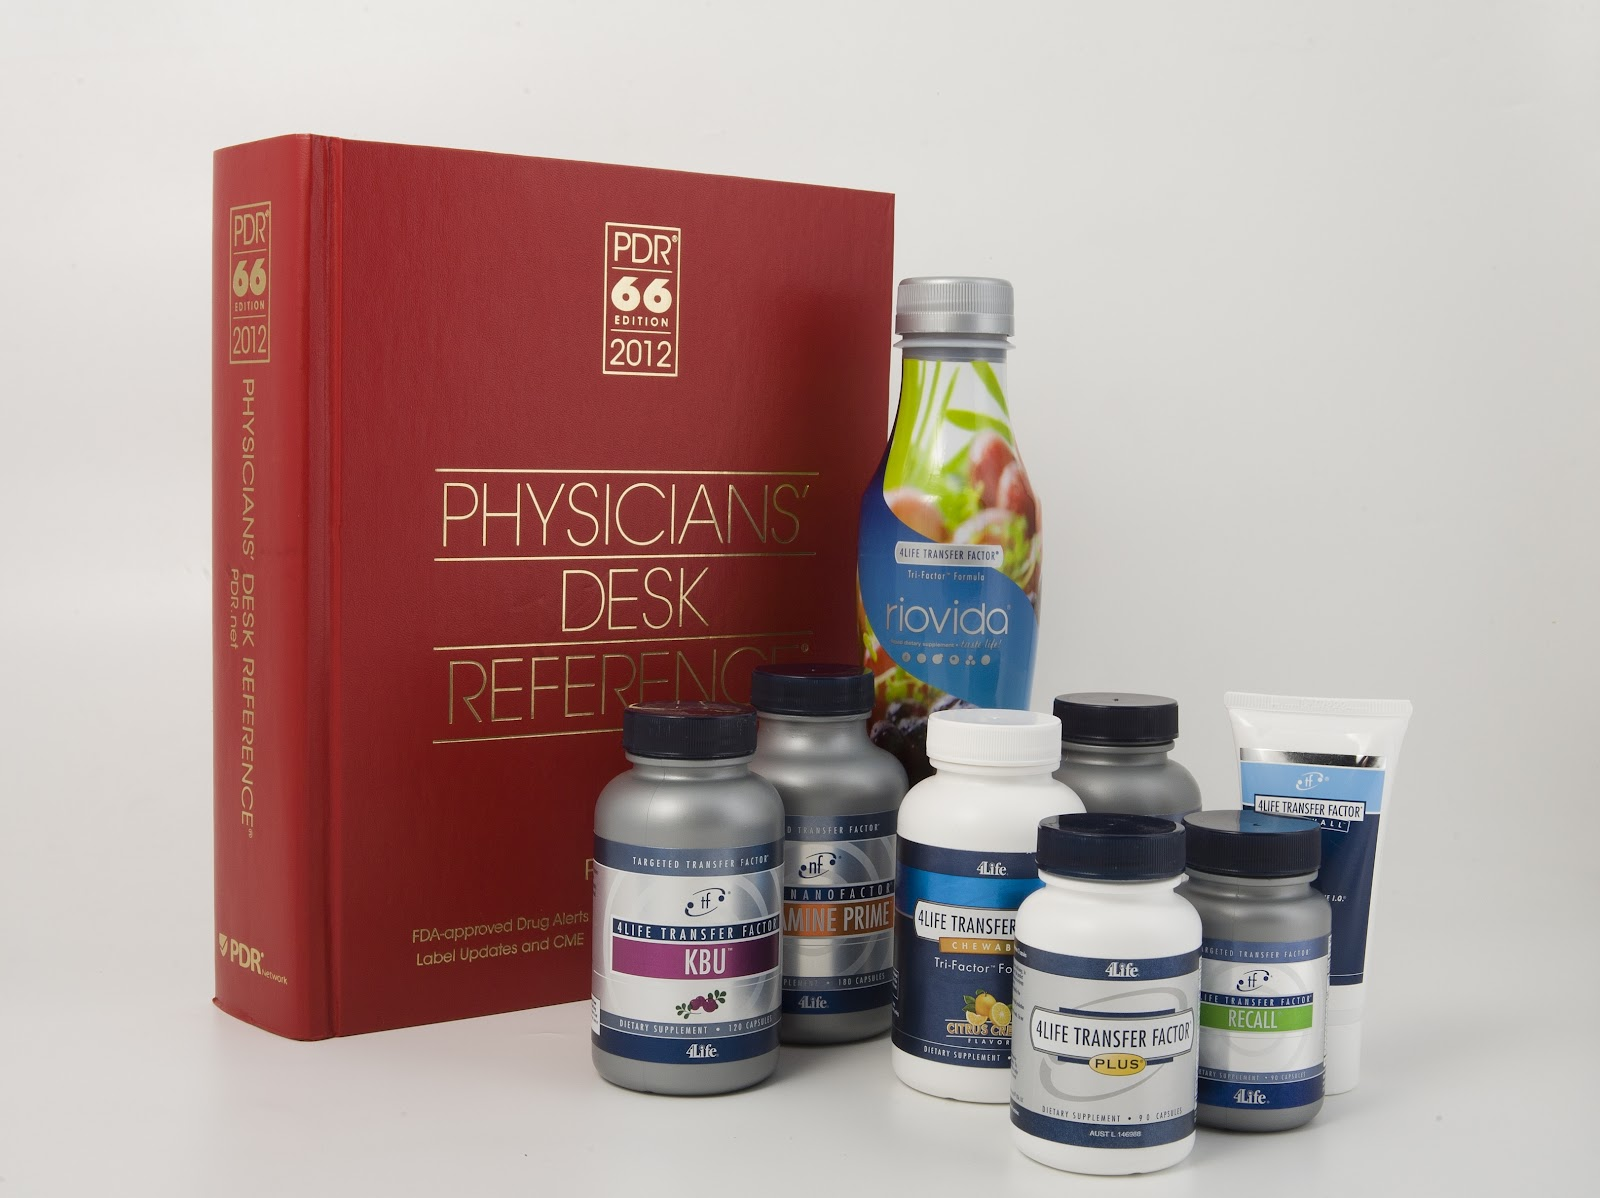 David And Bianca 4life Products Are In The Pdr